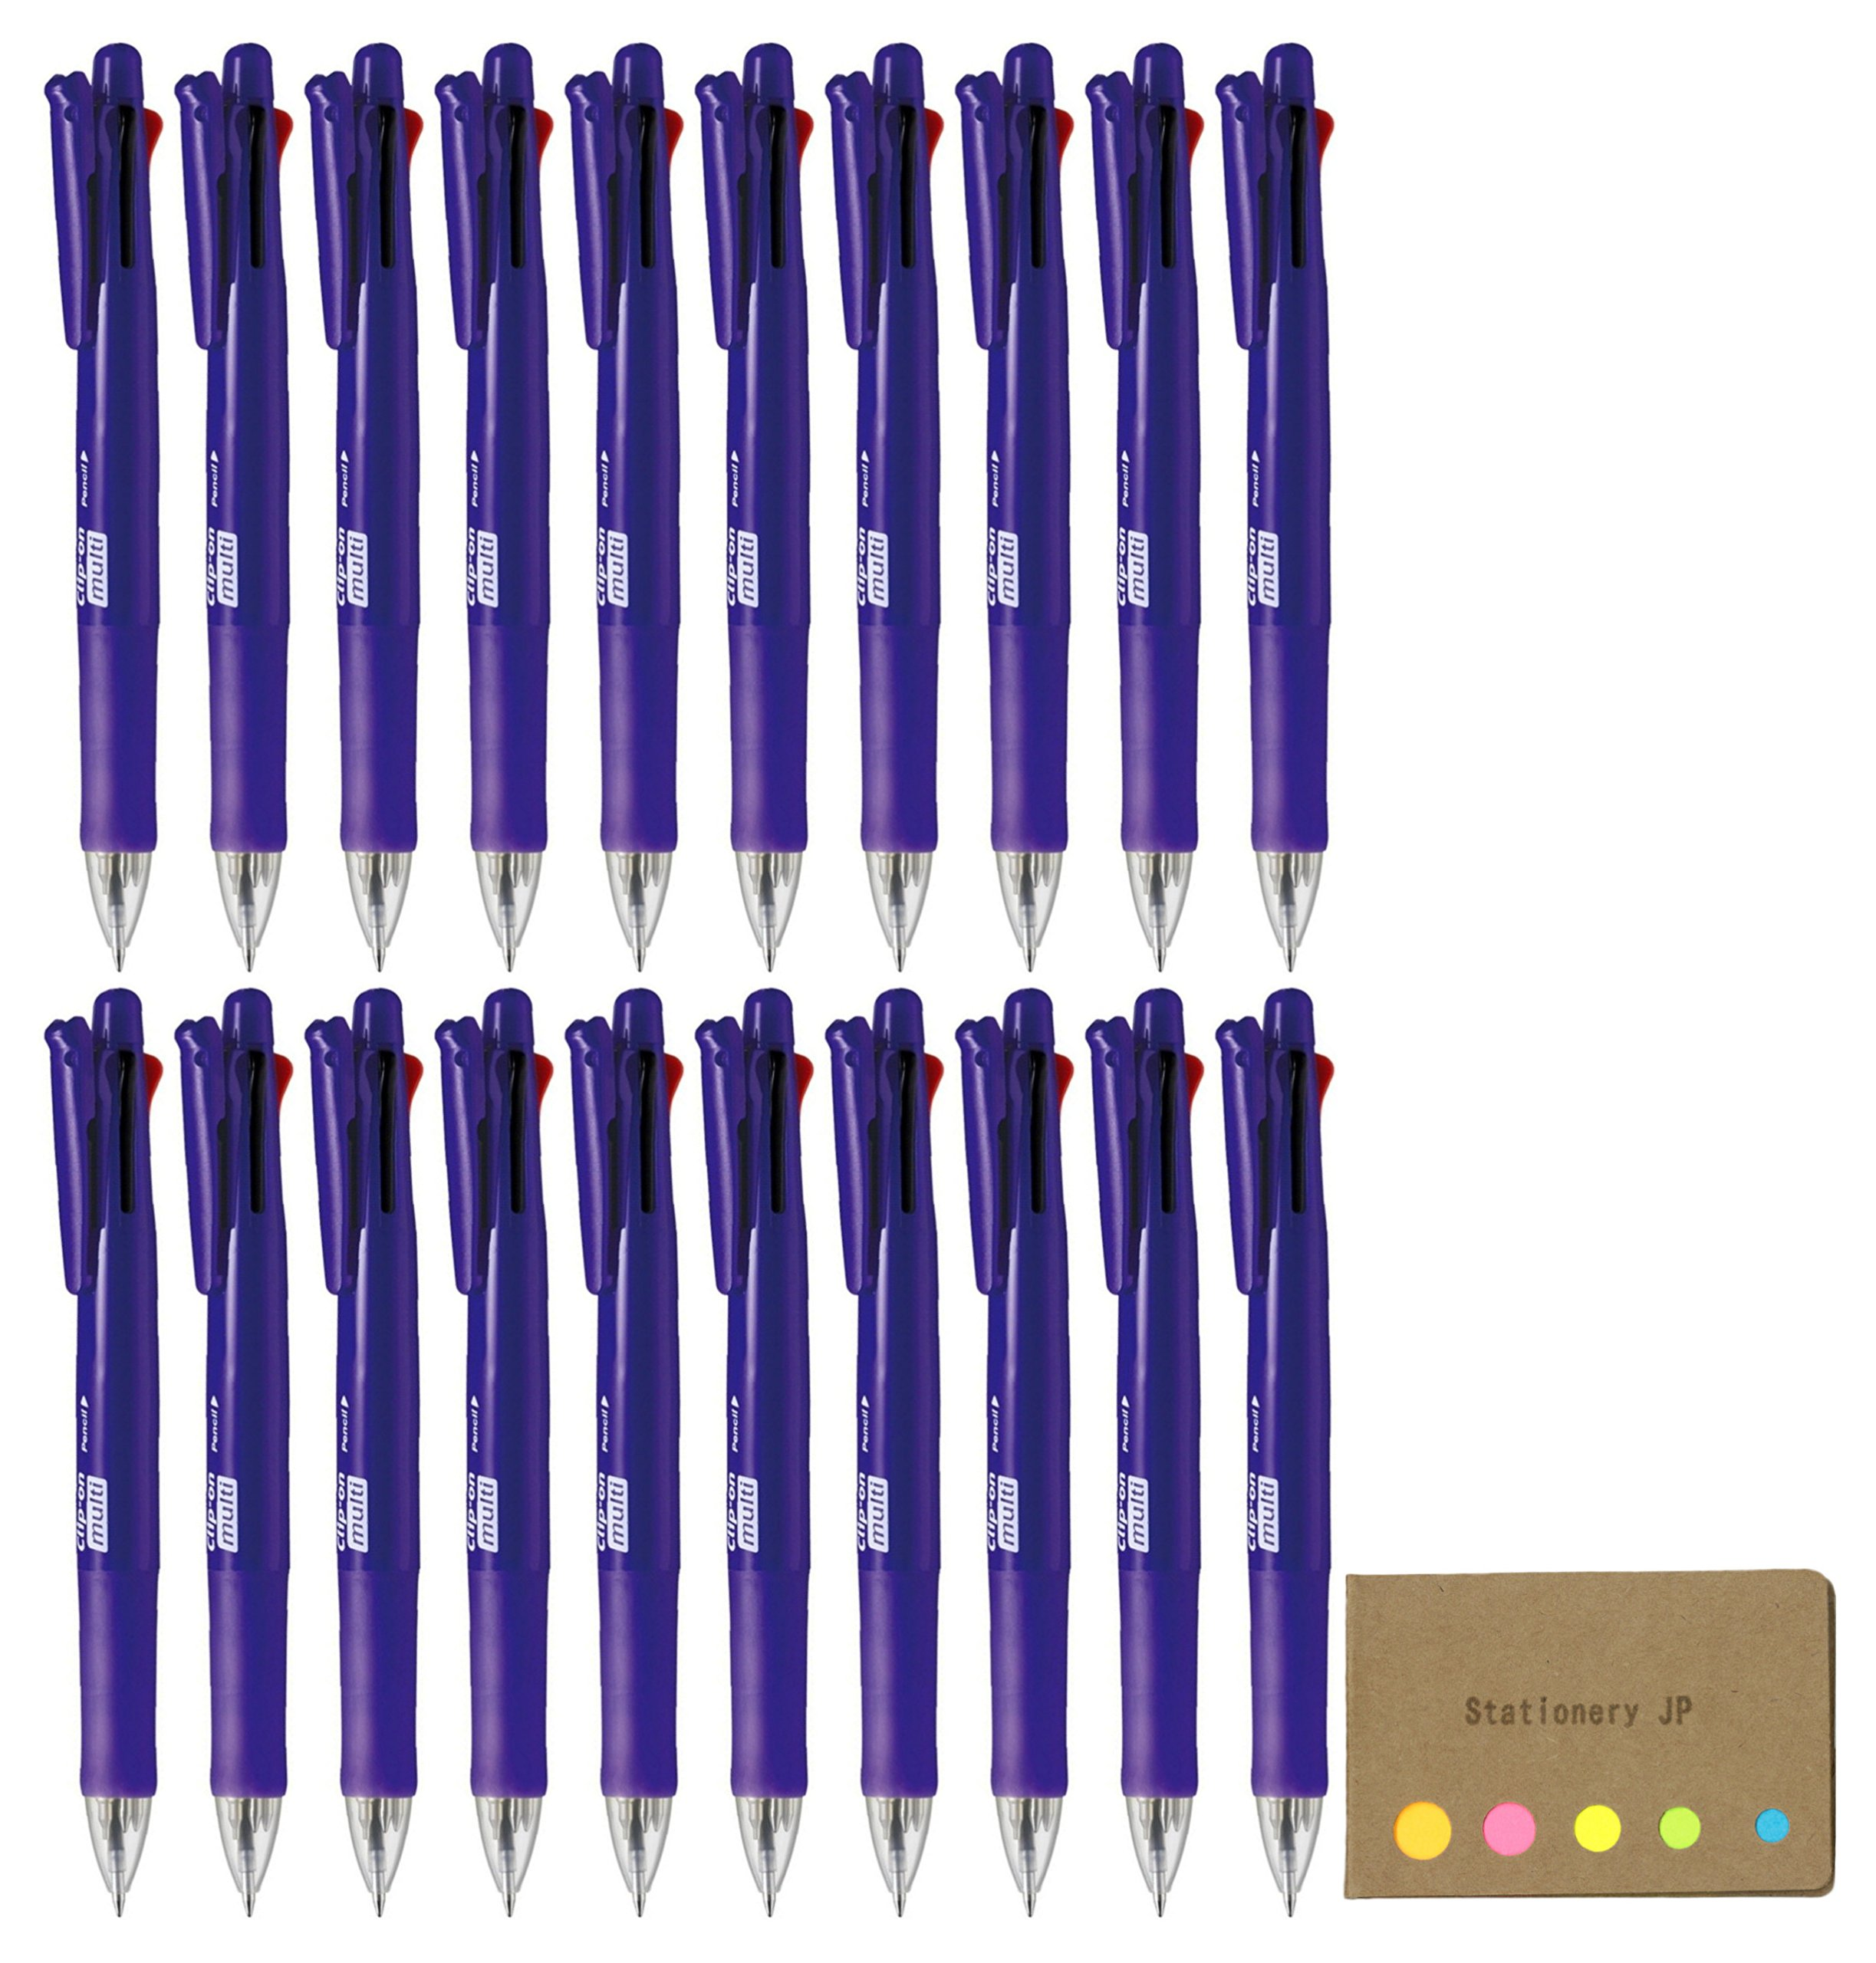 Zebra B4SA1 Clip-on multi F 0.7mm Multifunctional Pen, Elegant Violet Body, 20-pack, Sticky Notes Value Set by Stationery JP (Image #1)